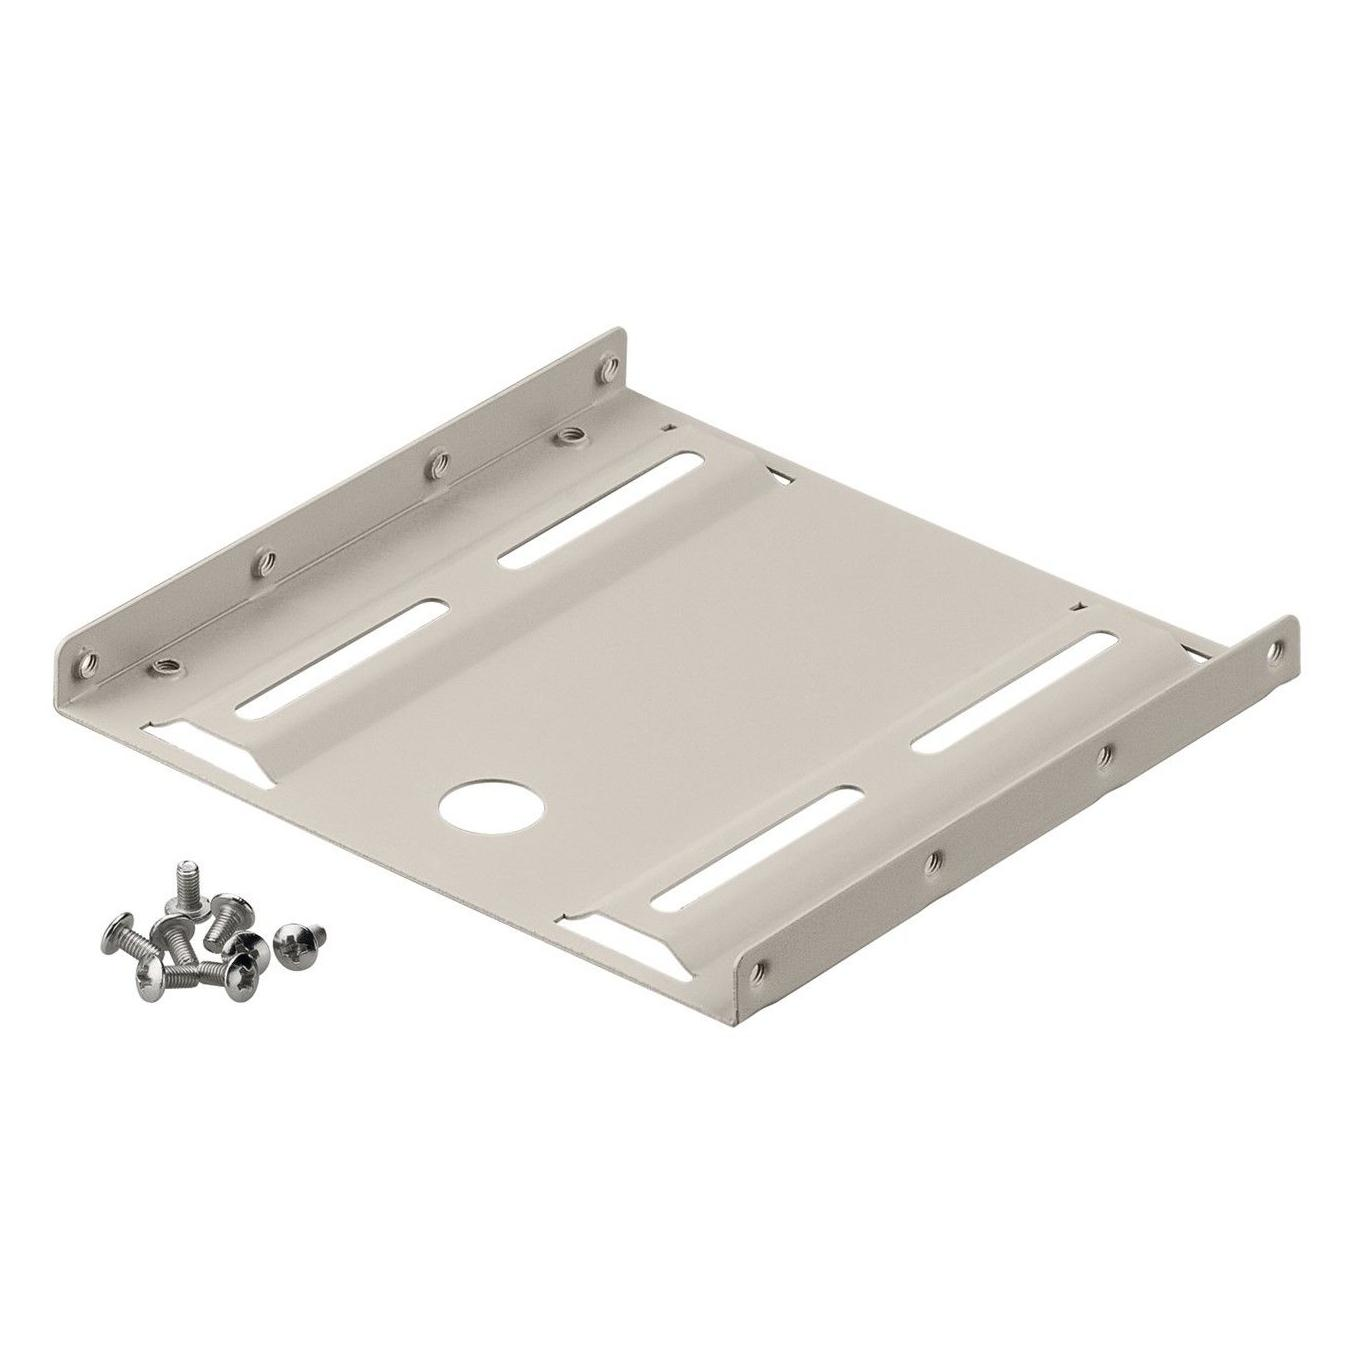 2.5  hard disk installation frame to 3.5 <br>for installation of HDD / SSD  With this mounting set a 2.5 HDD can bemounted in a 3.5 slot